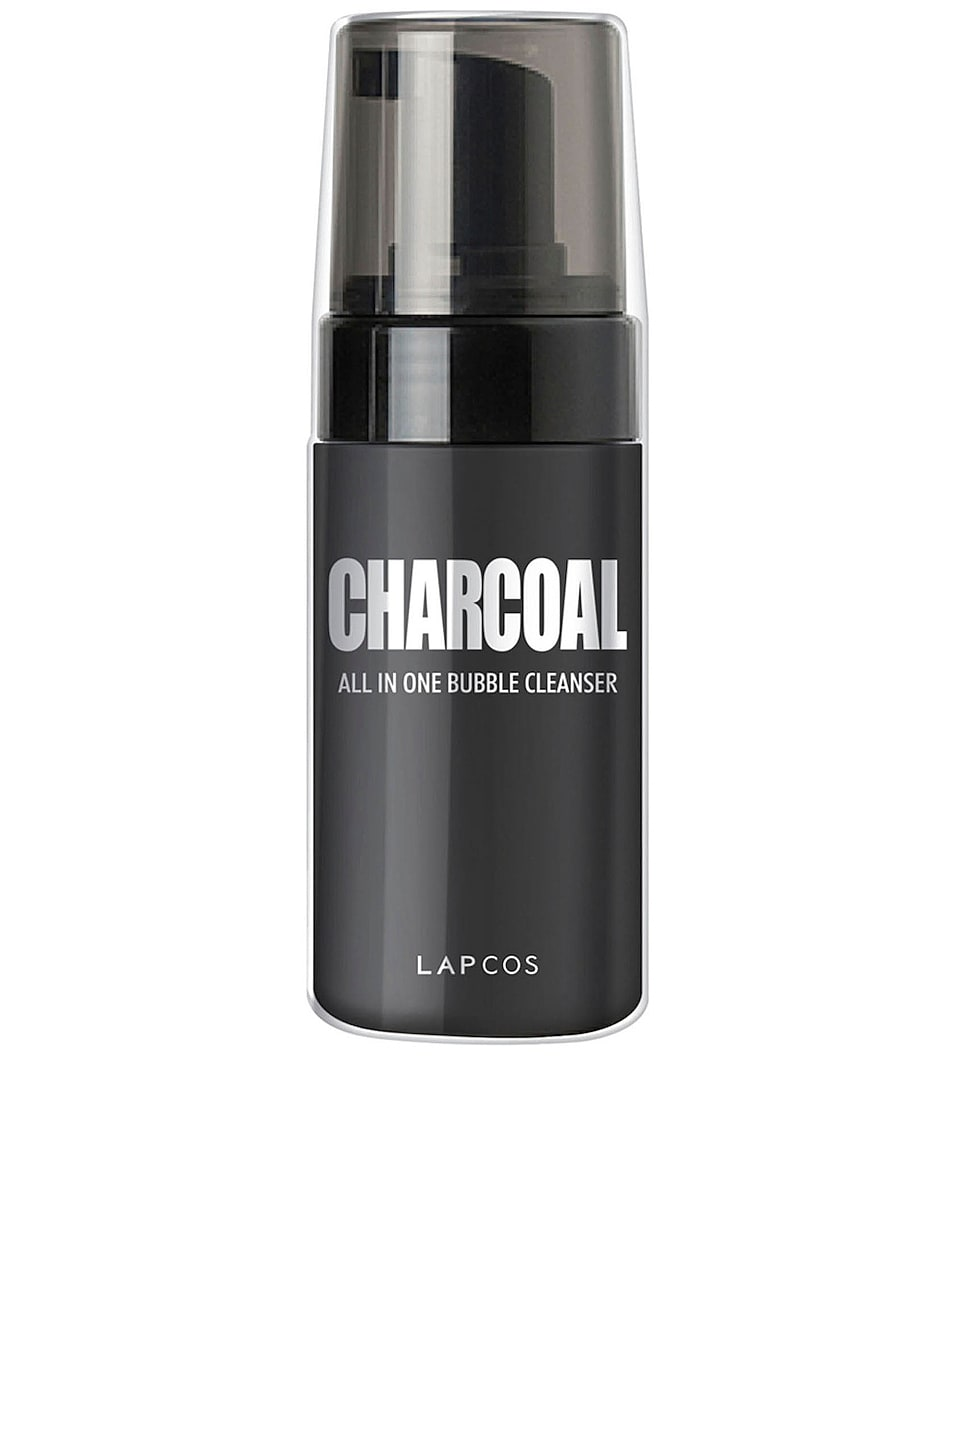 LAPCOS CHARCOAL ALL IN ONE BUBBLE CLEANSER